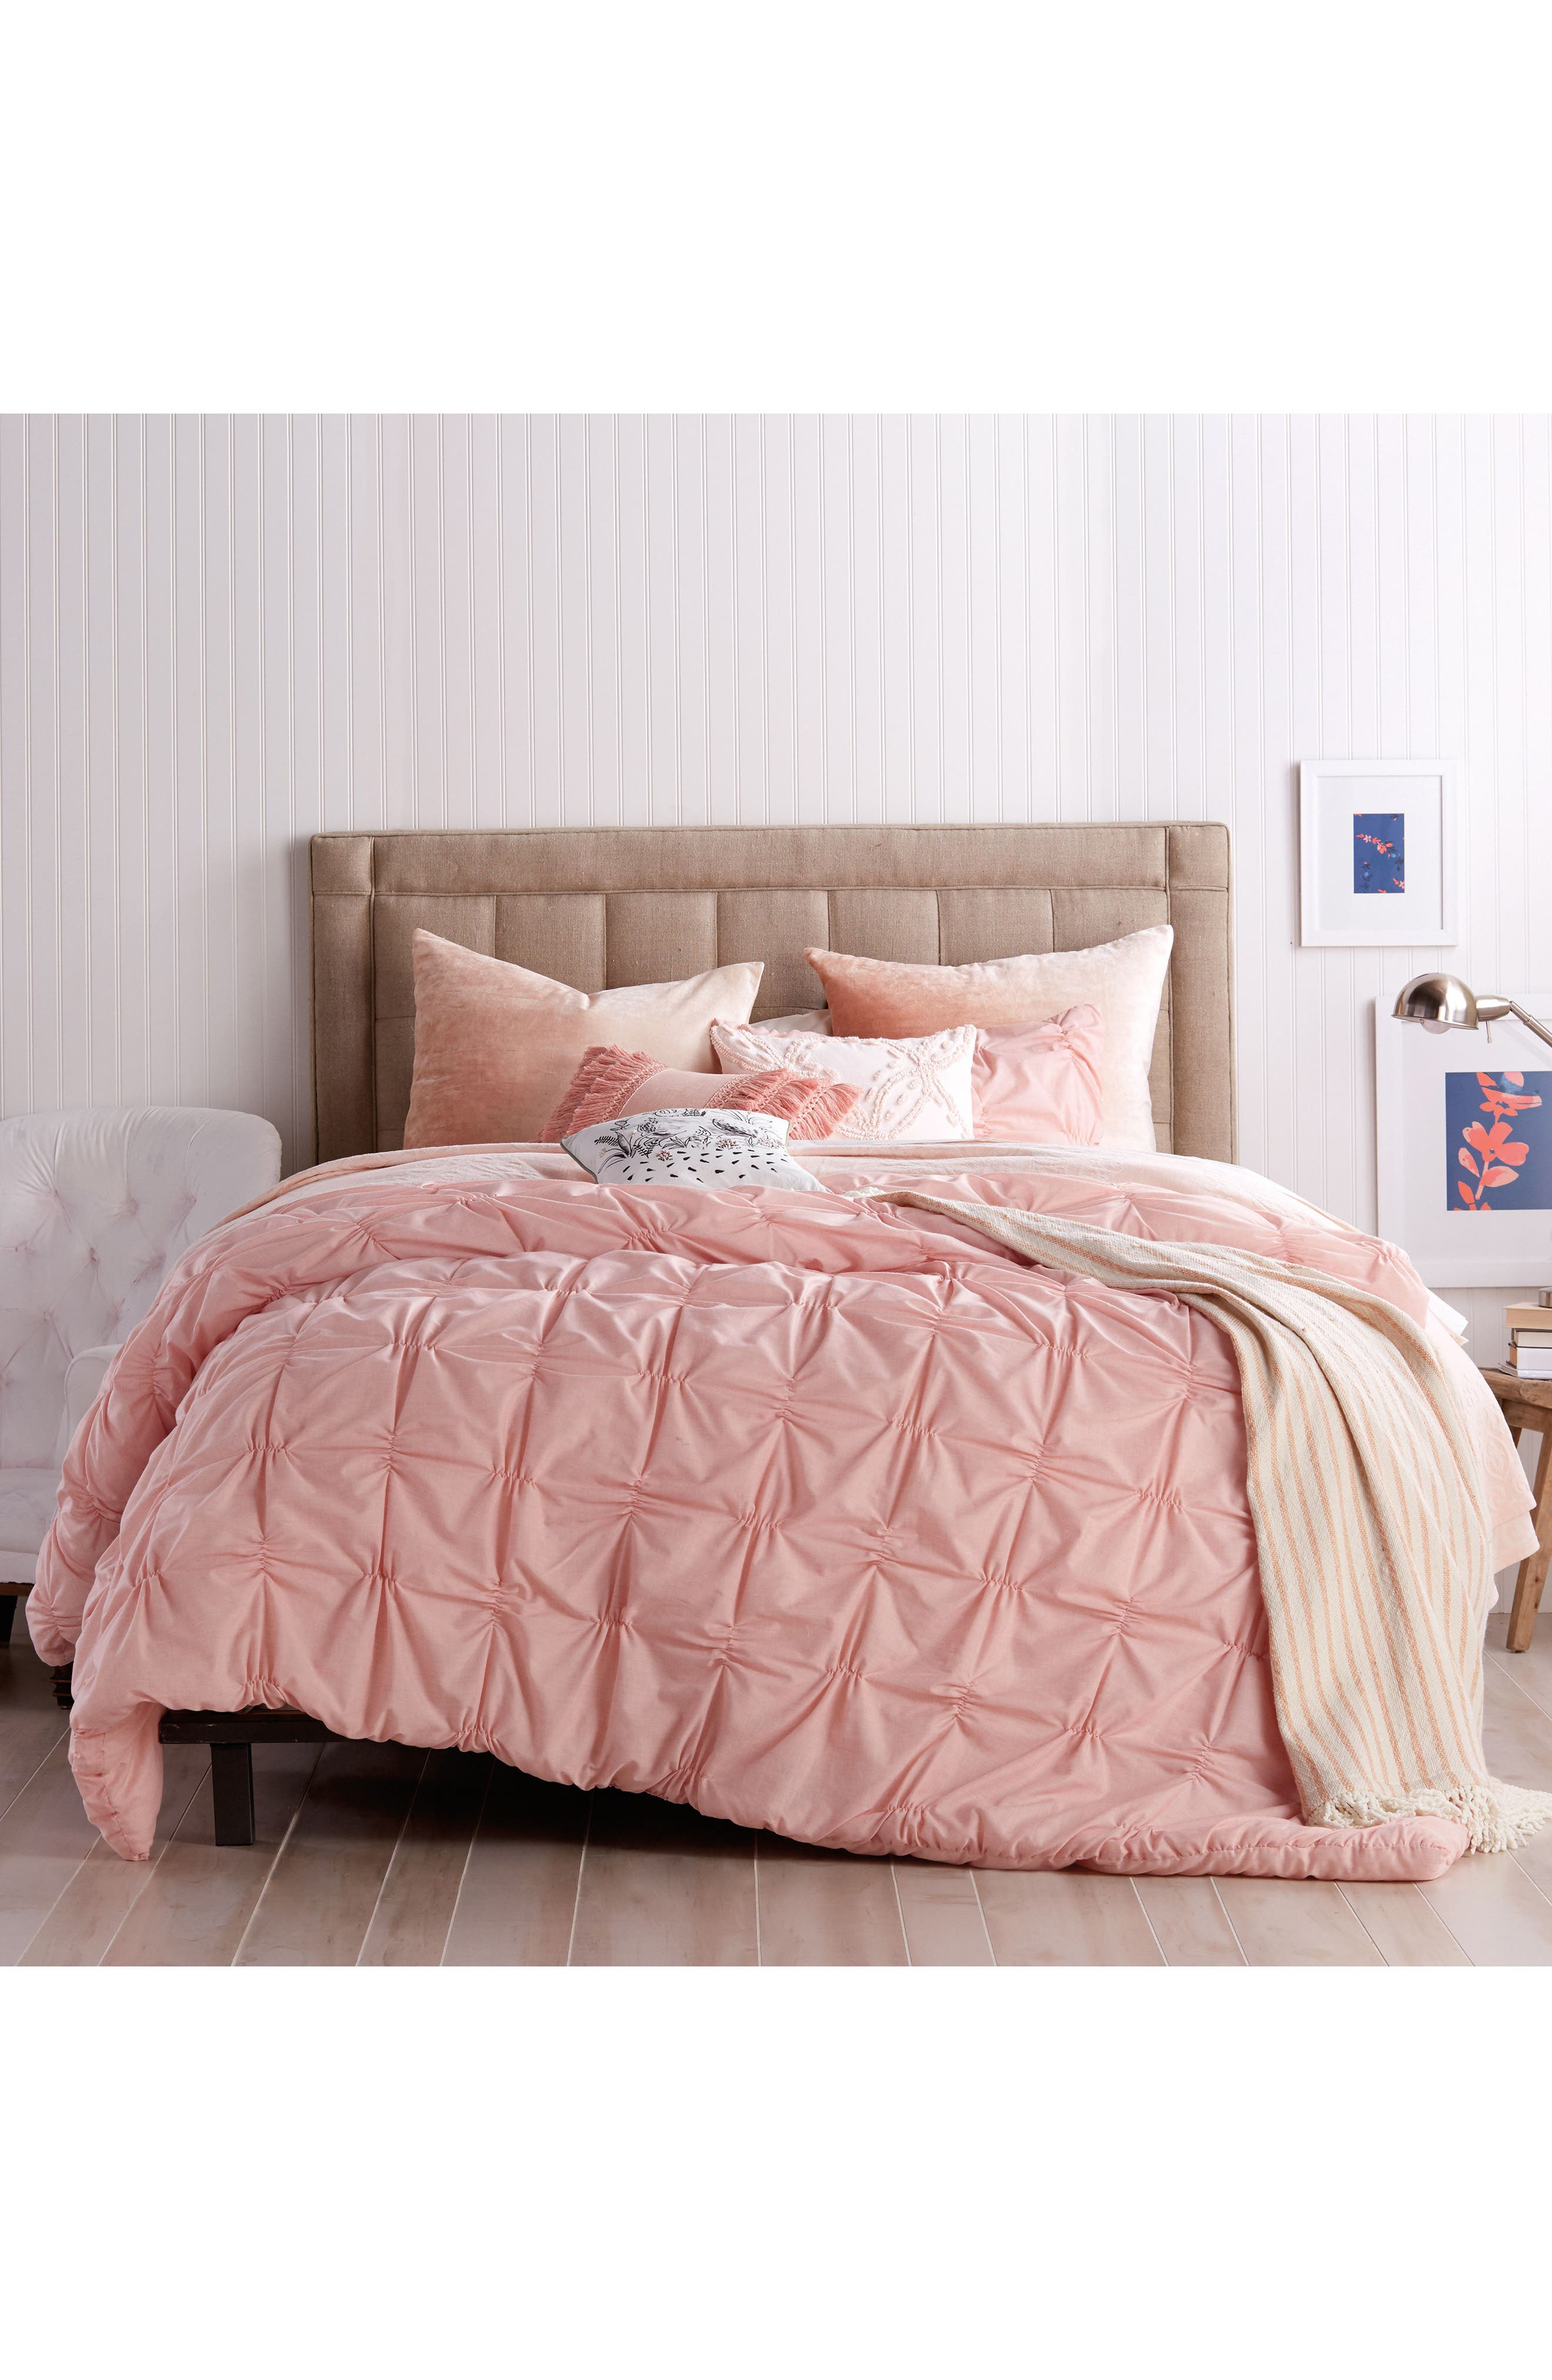 Peri Home Check Smocked Comforter & Sham Set